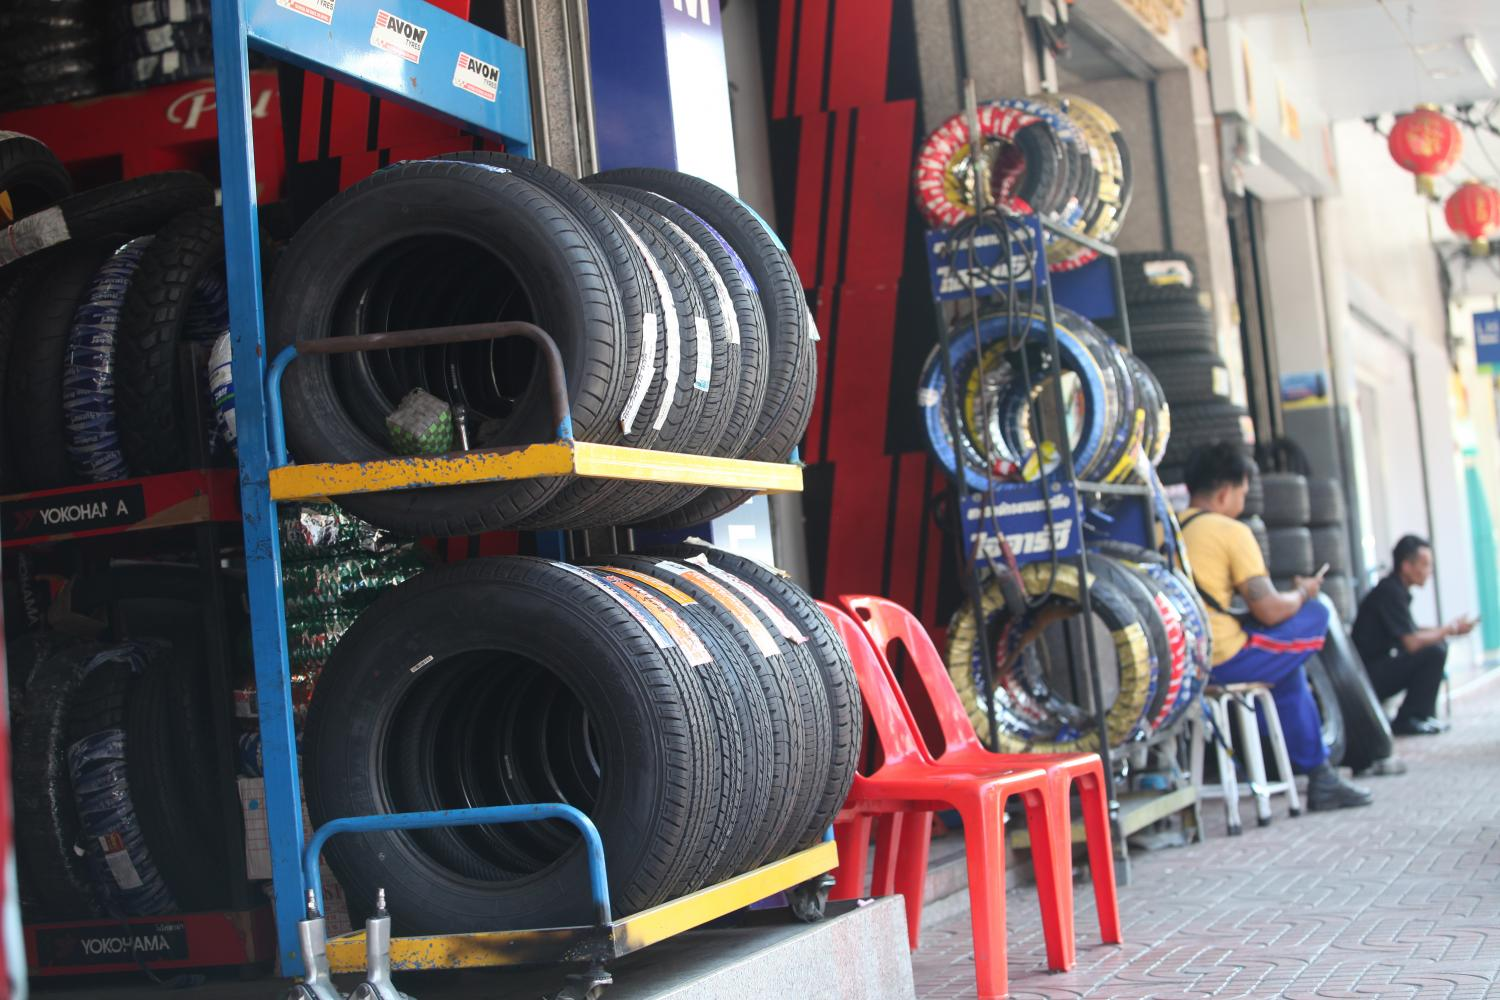 Between 18.5 and 19.2 million tyres are estimated to be exported to the US during the first half of 2021.(Photo by Pawat Laupaisarntaksin)